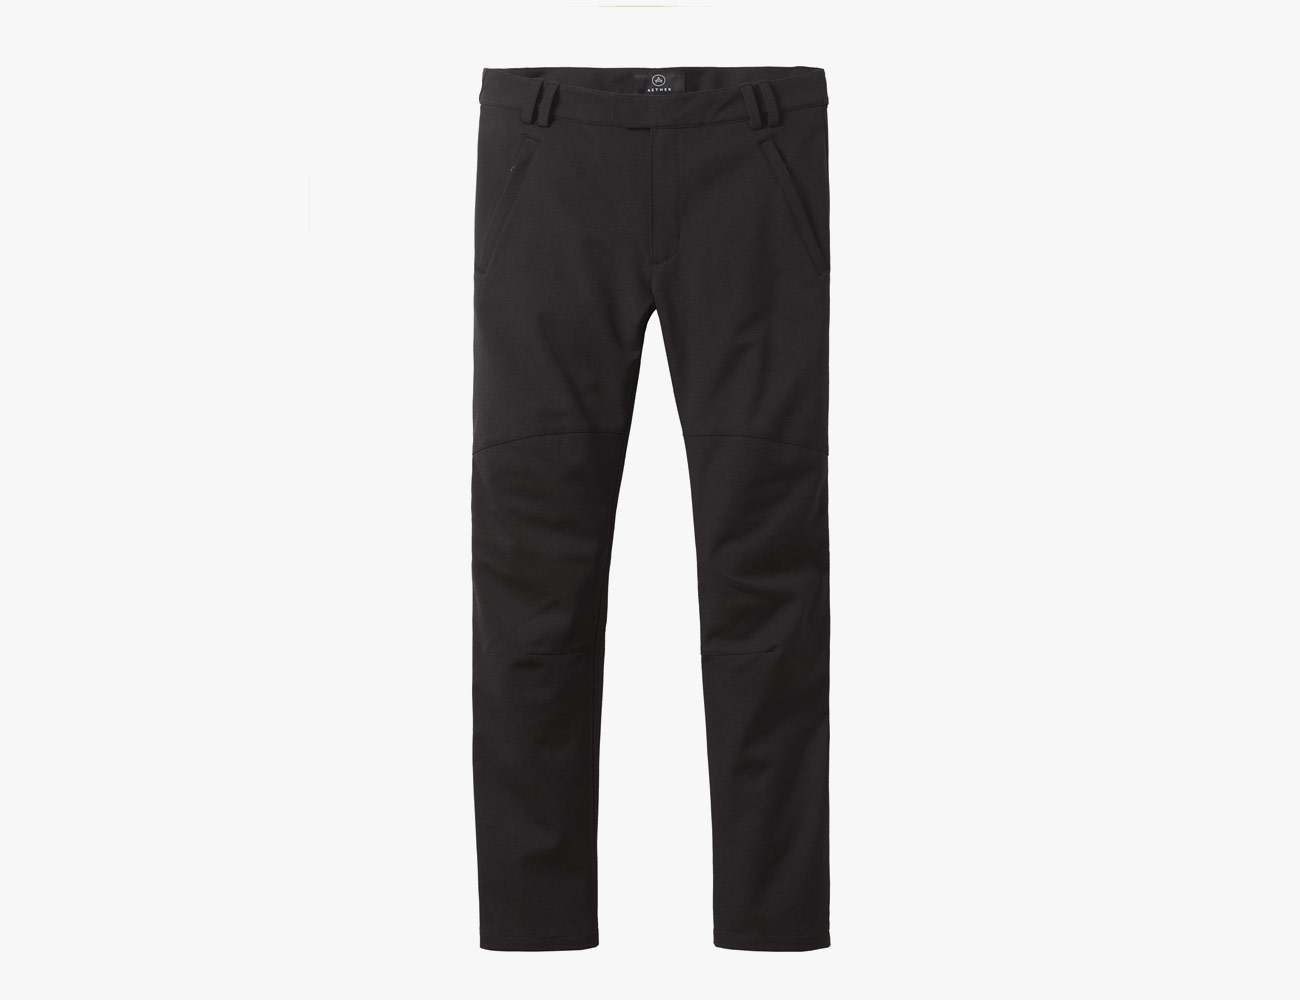 c38ce499d6724 Best Motorcycle Pants: Aether Ramble Not many adventure riding motorcycle  jackets can pull double duty as a casual everyday jacket, but the Aether  Mojave ...